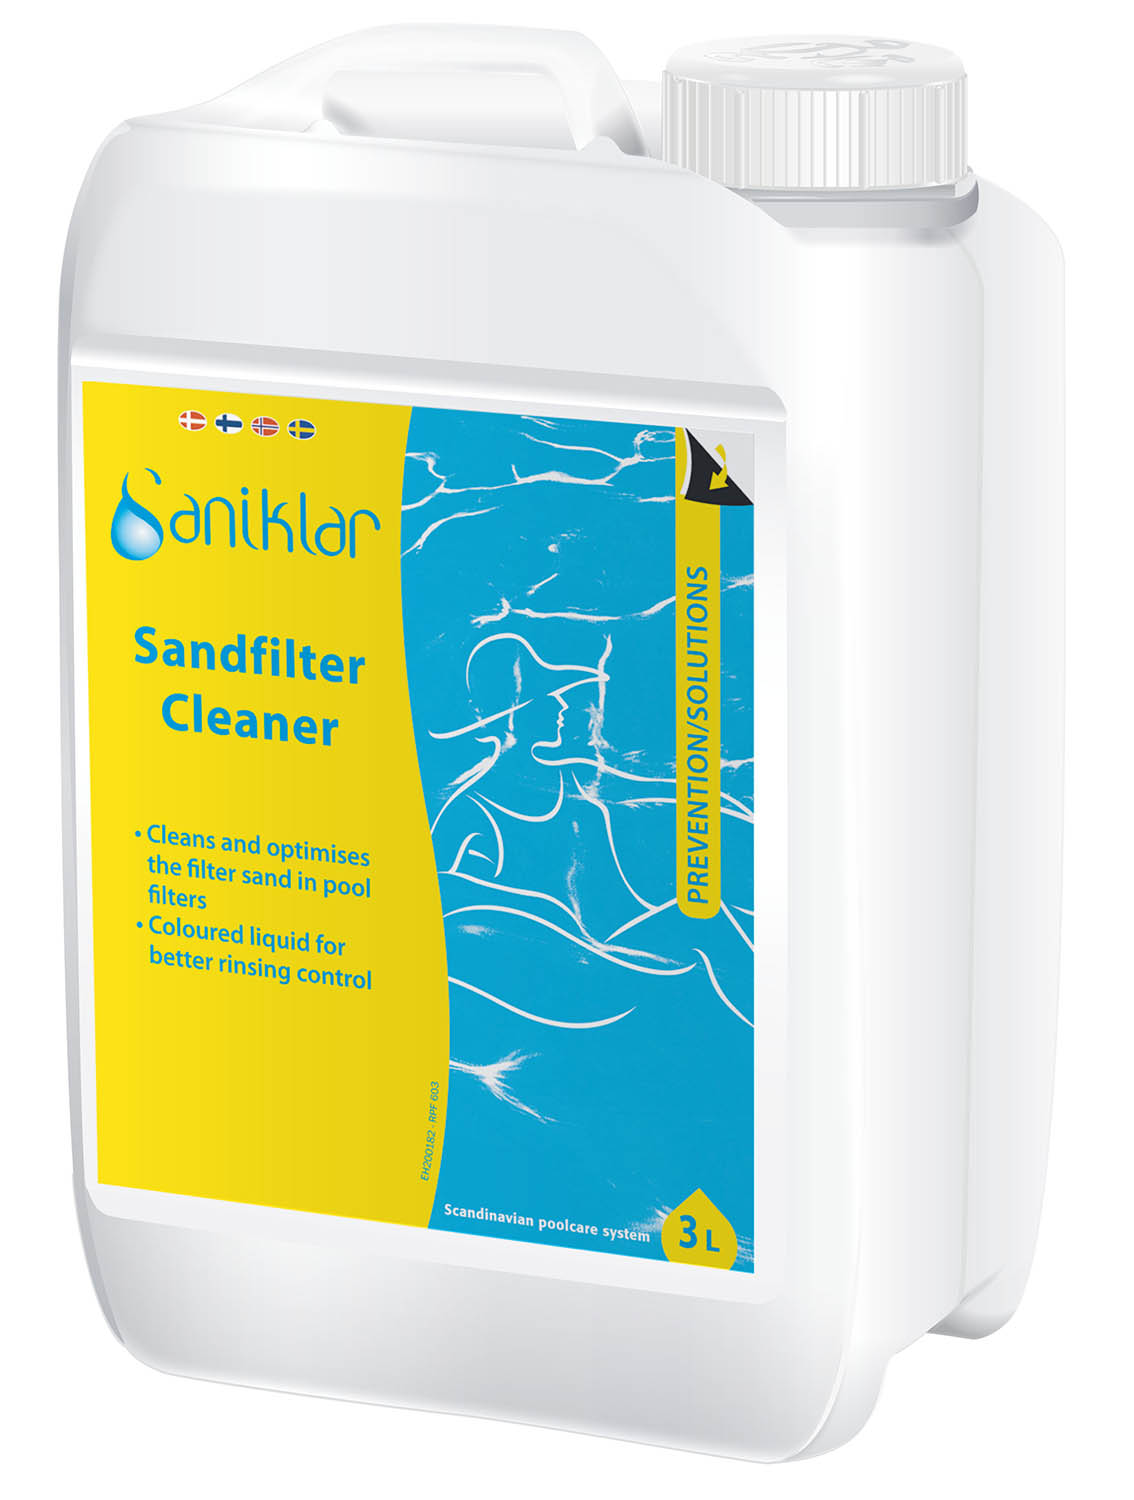 Saniklar Sandfilter Cleaner